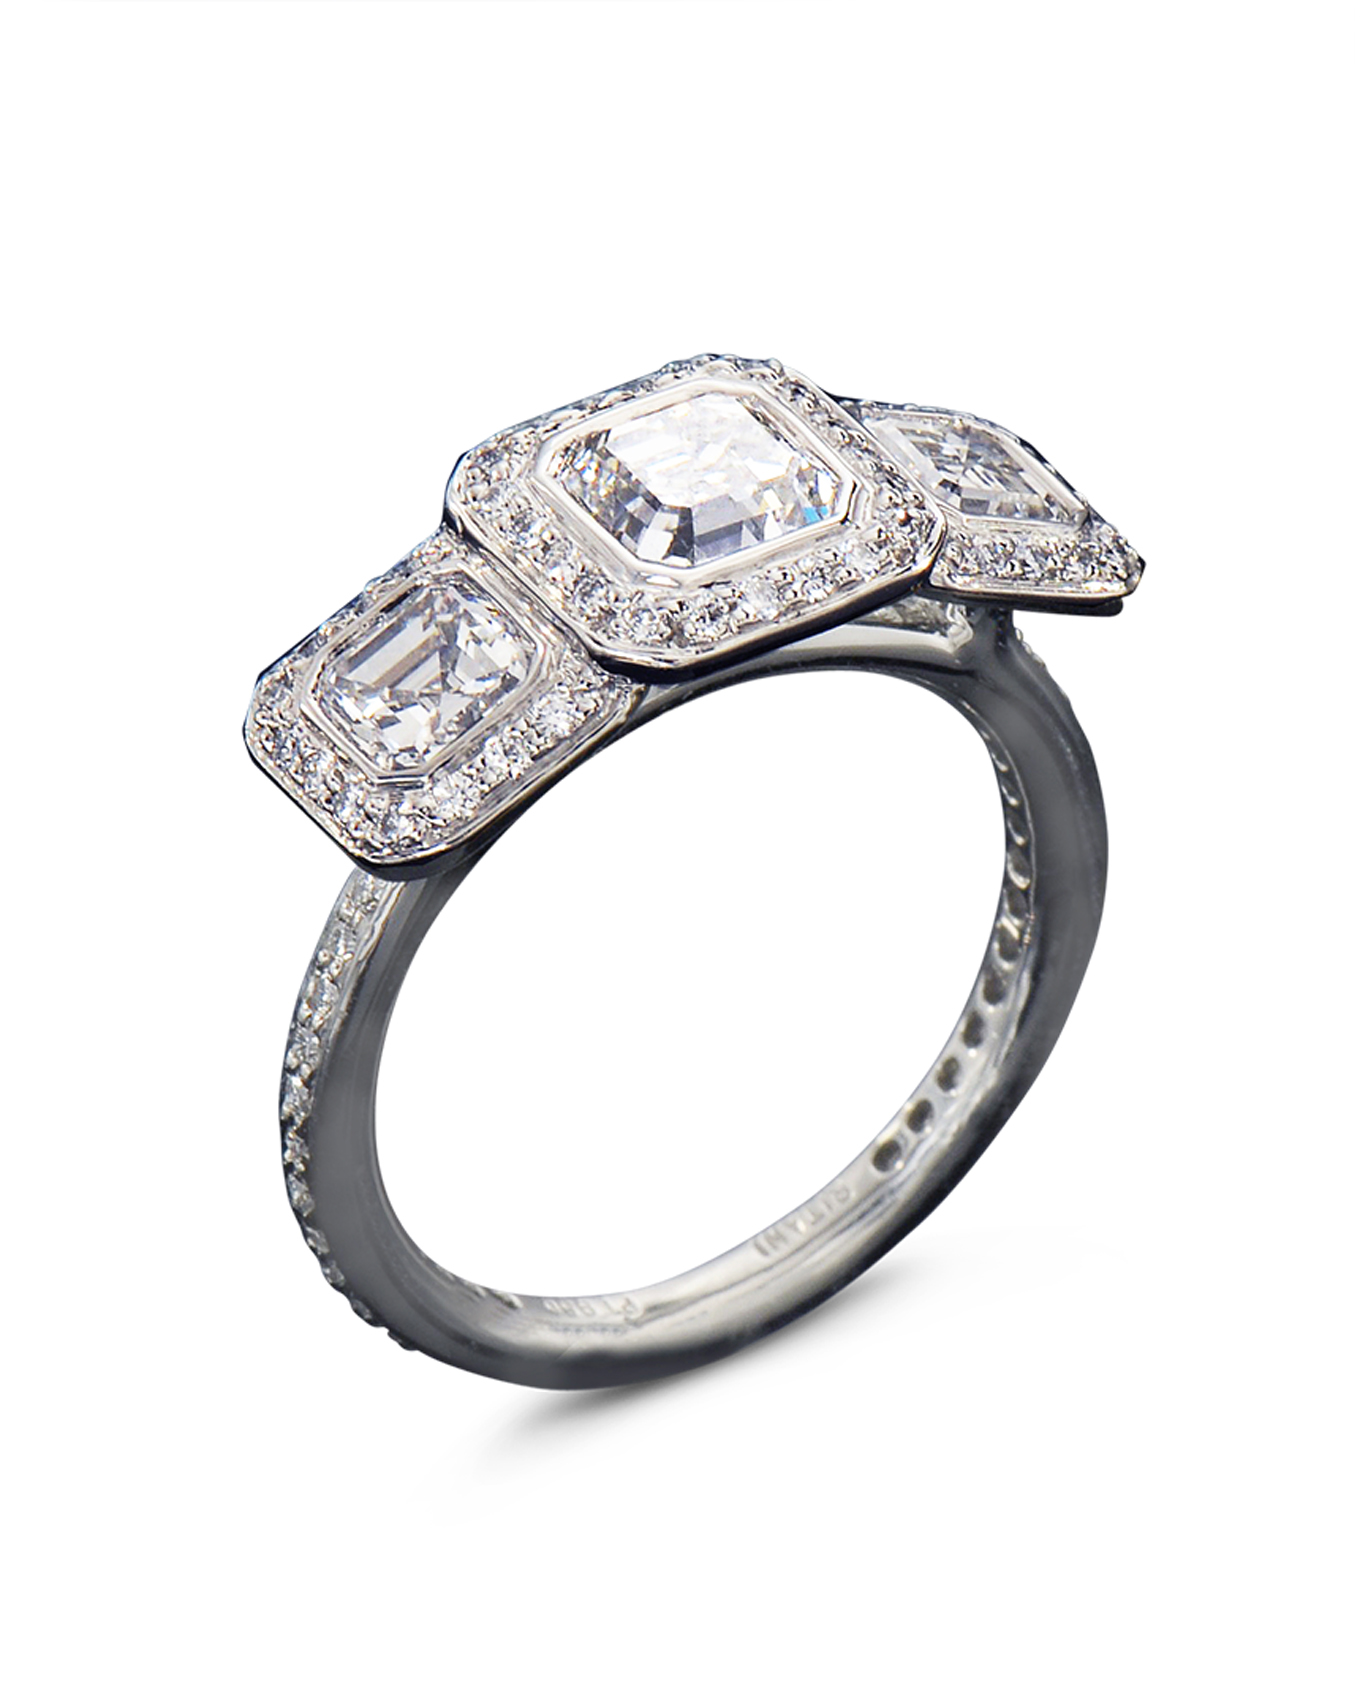 weighing cut stunning j beautiful l ring the of jewelry centred on rings a and early engagement at carat diamond g platinum asscher id